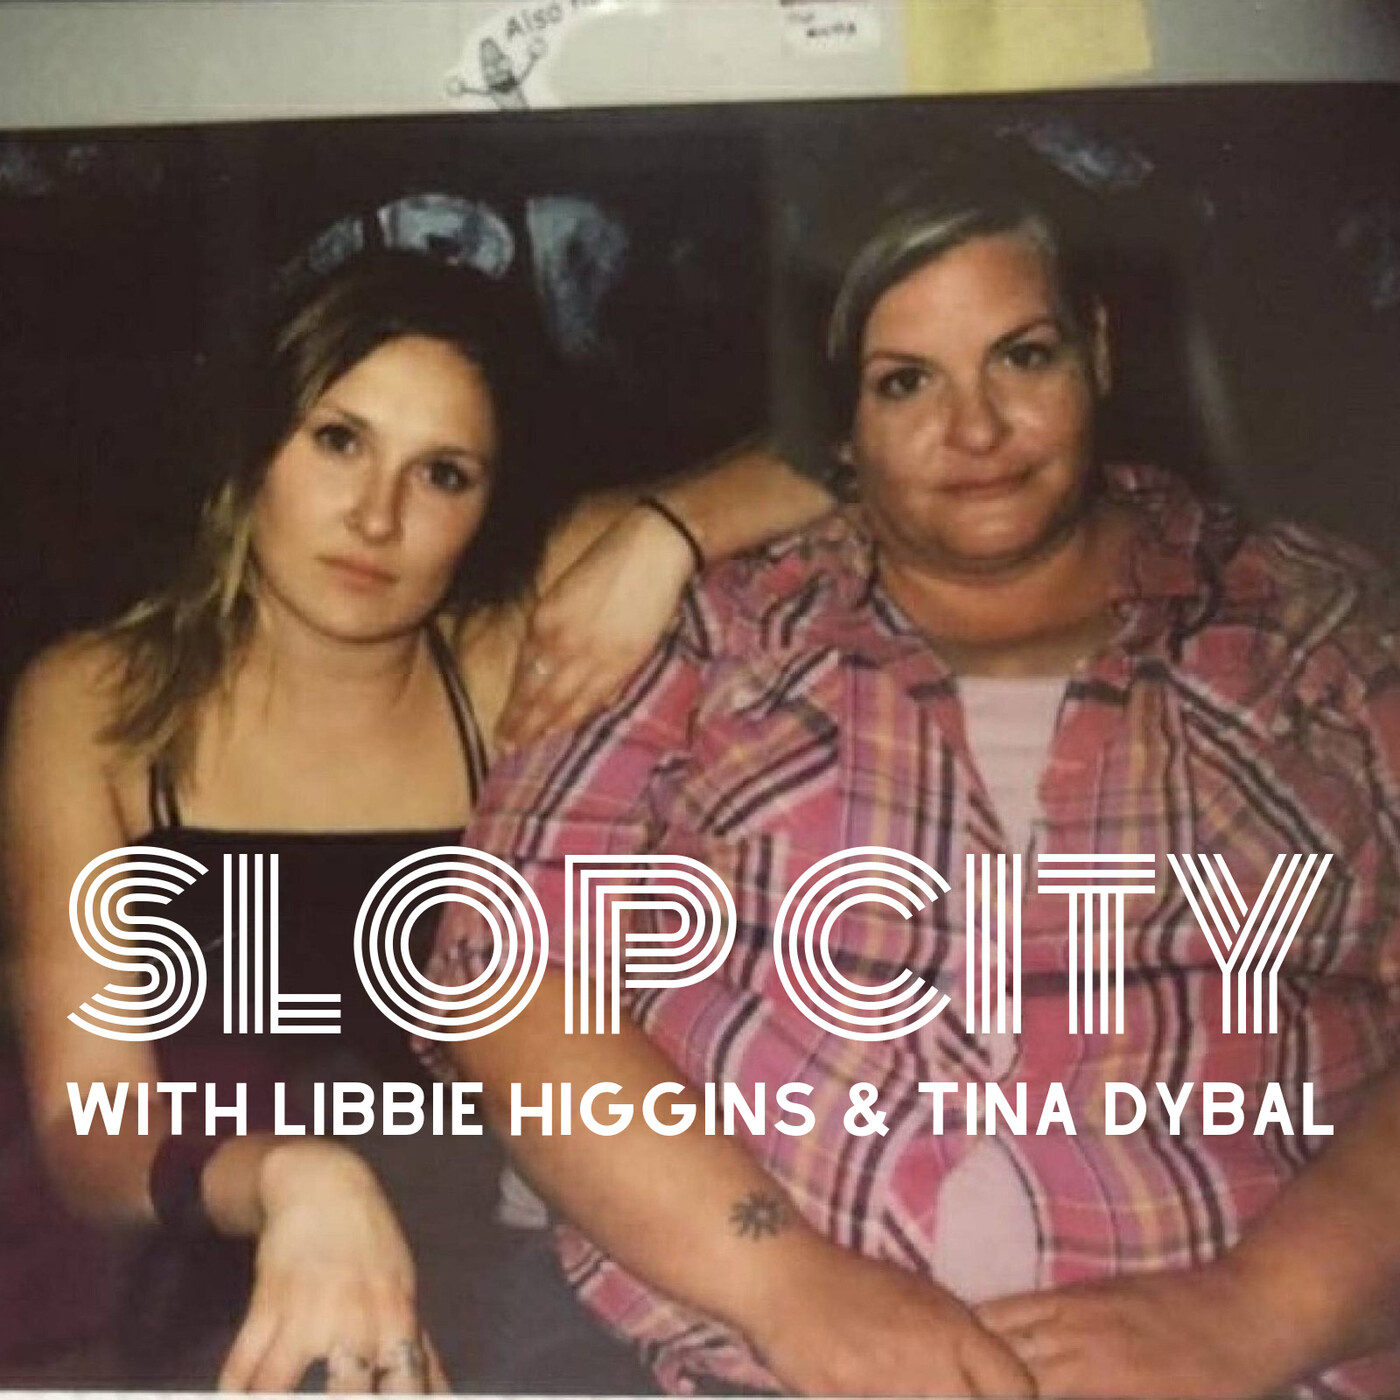 99- Mountain Mist- Slop City with Libbie Higgins and Tina Dybal